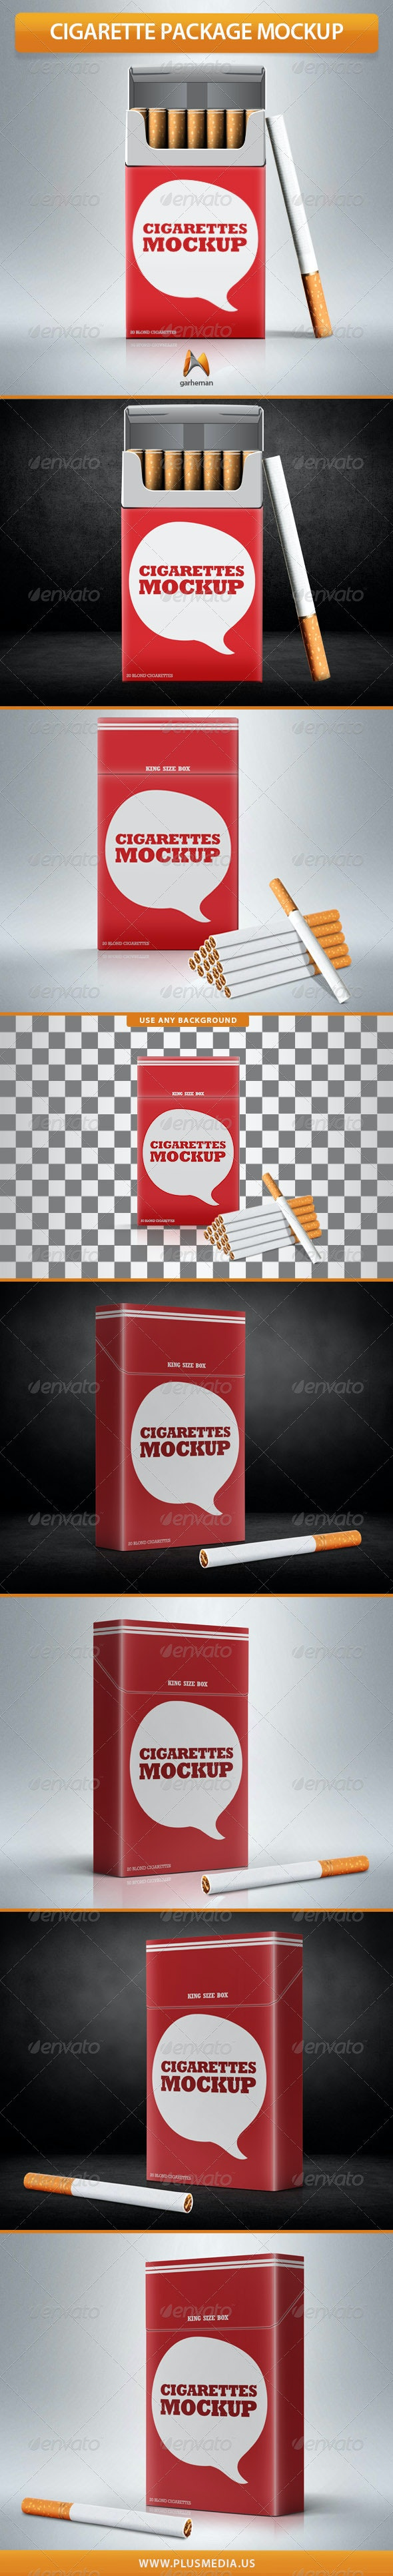 Cigarette Package Mock-Up - Miscellaneous Packaging